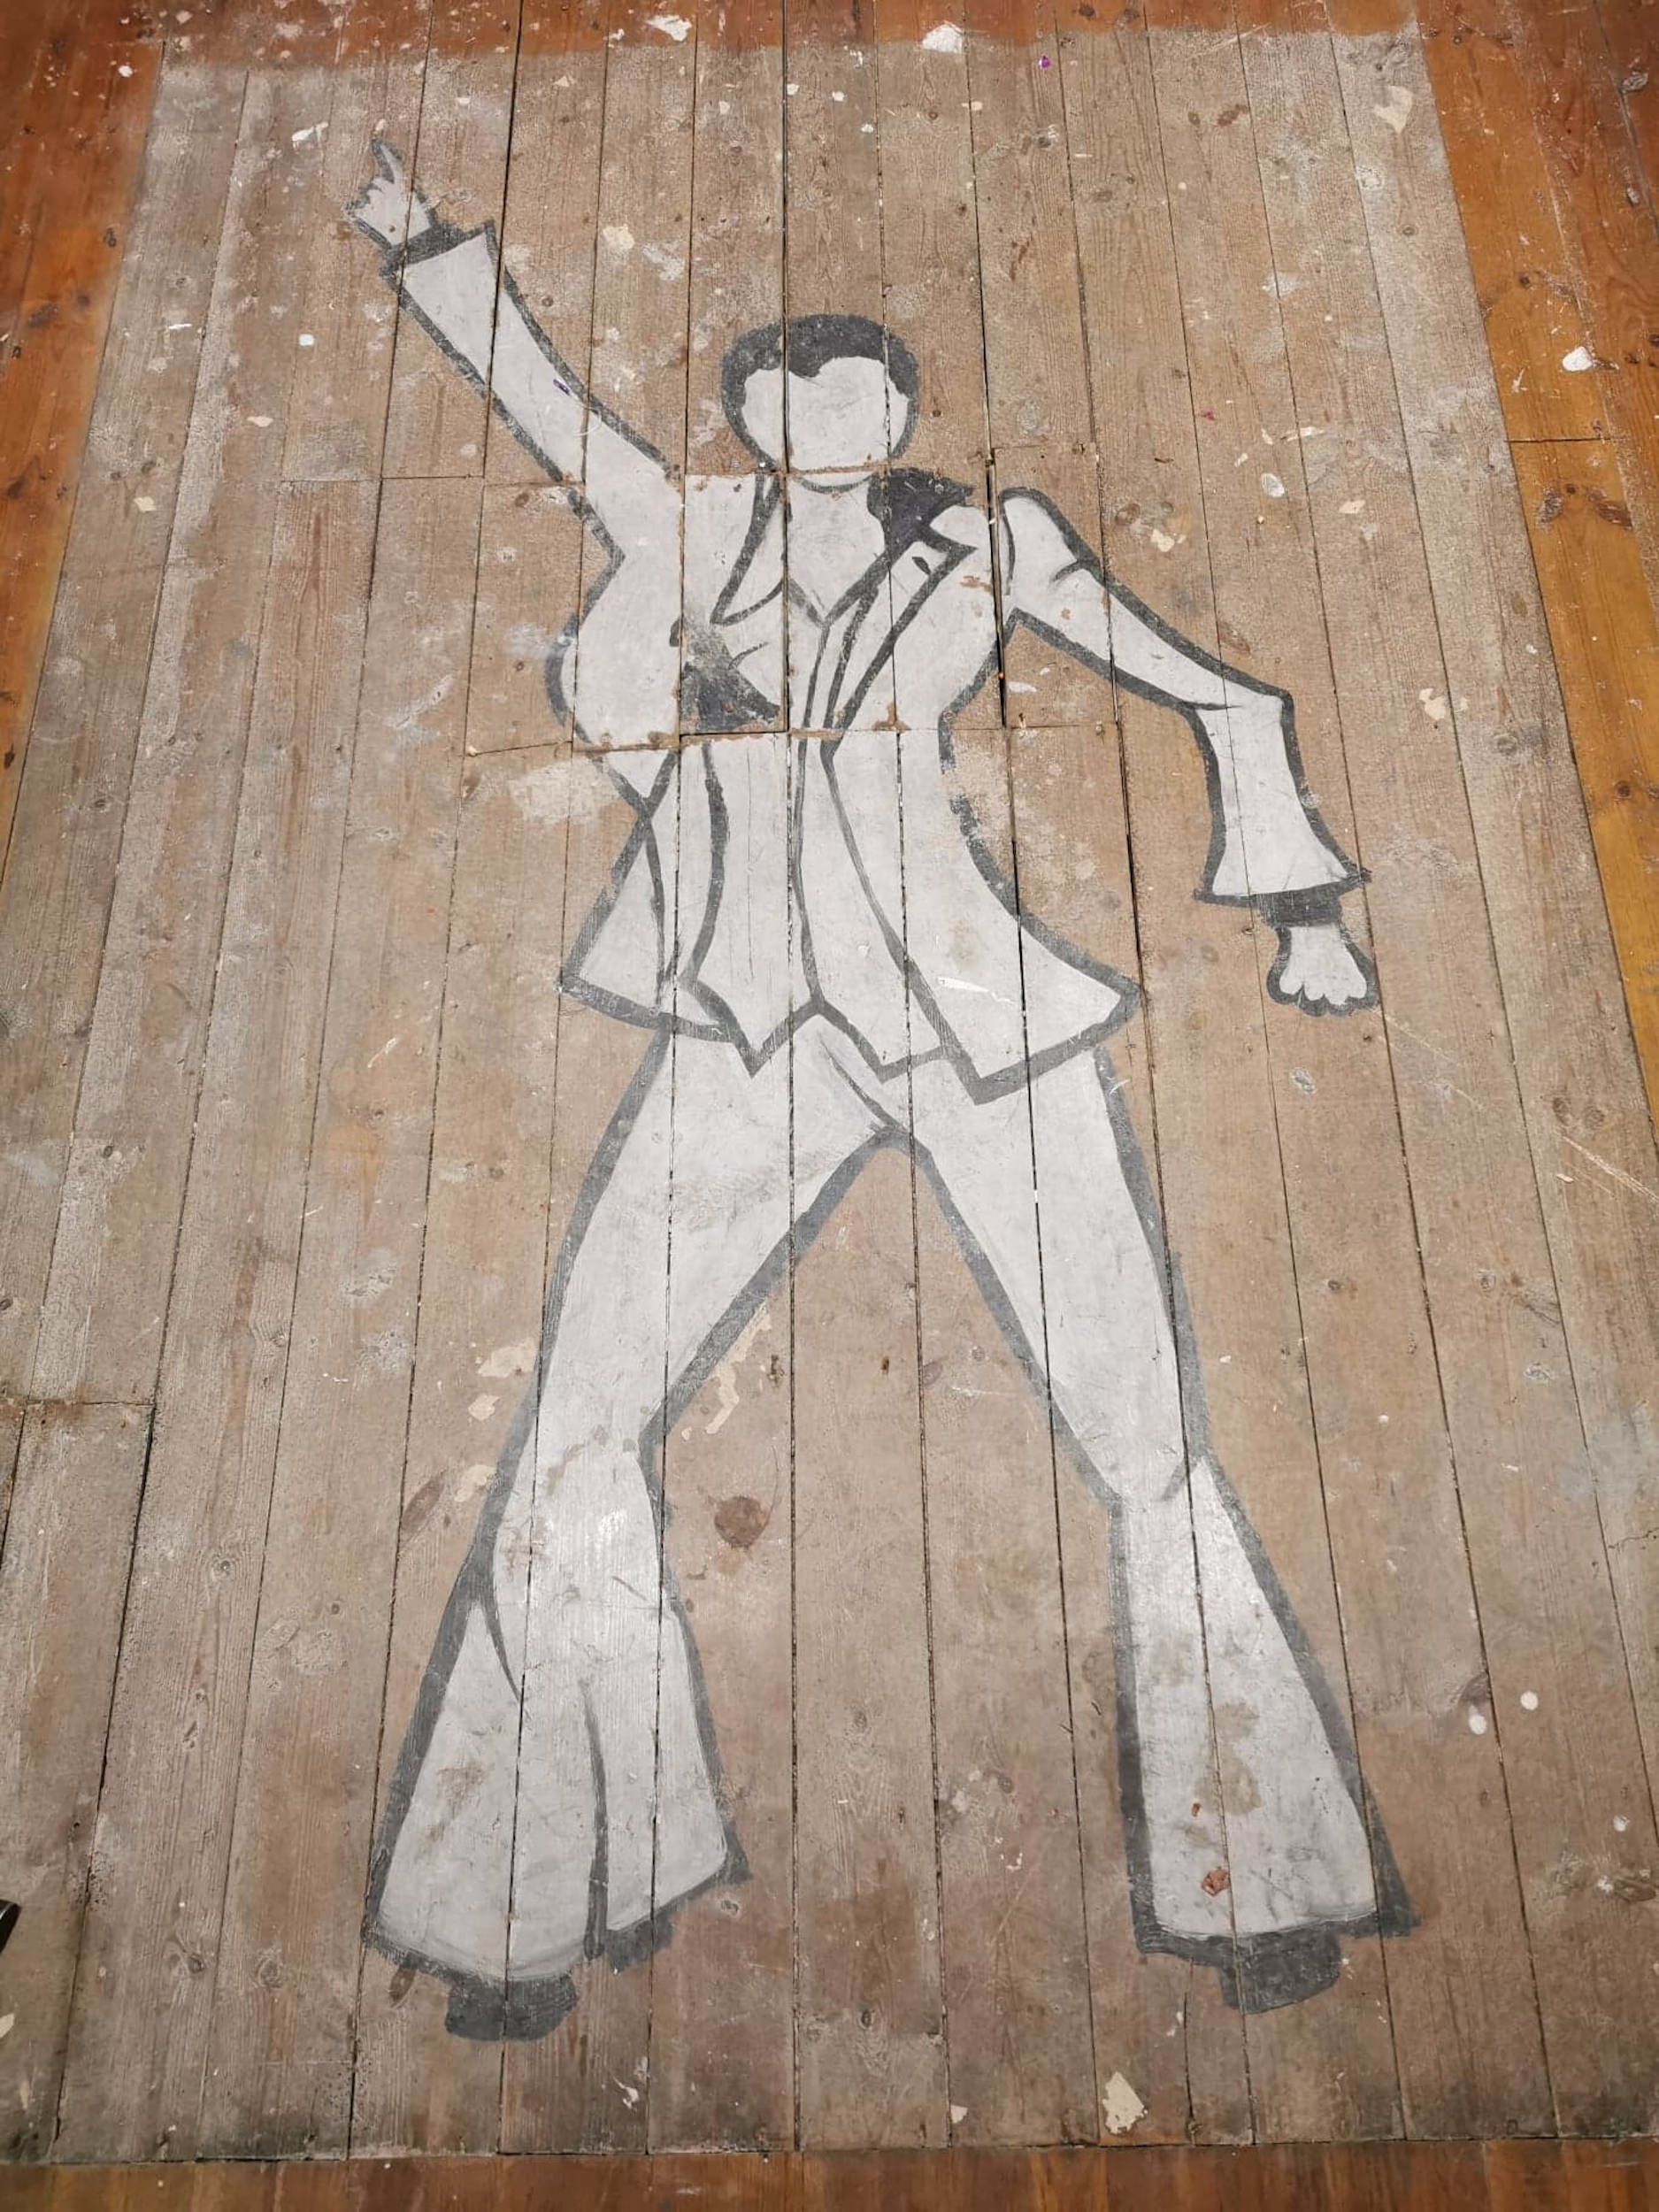 Saturday Night Fever drawing